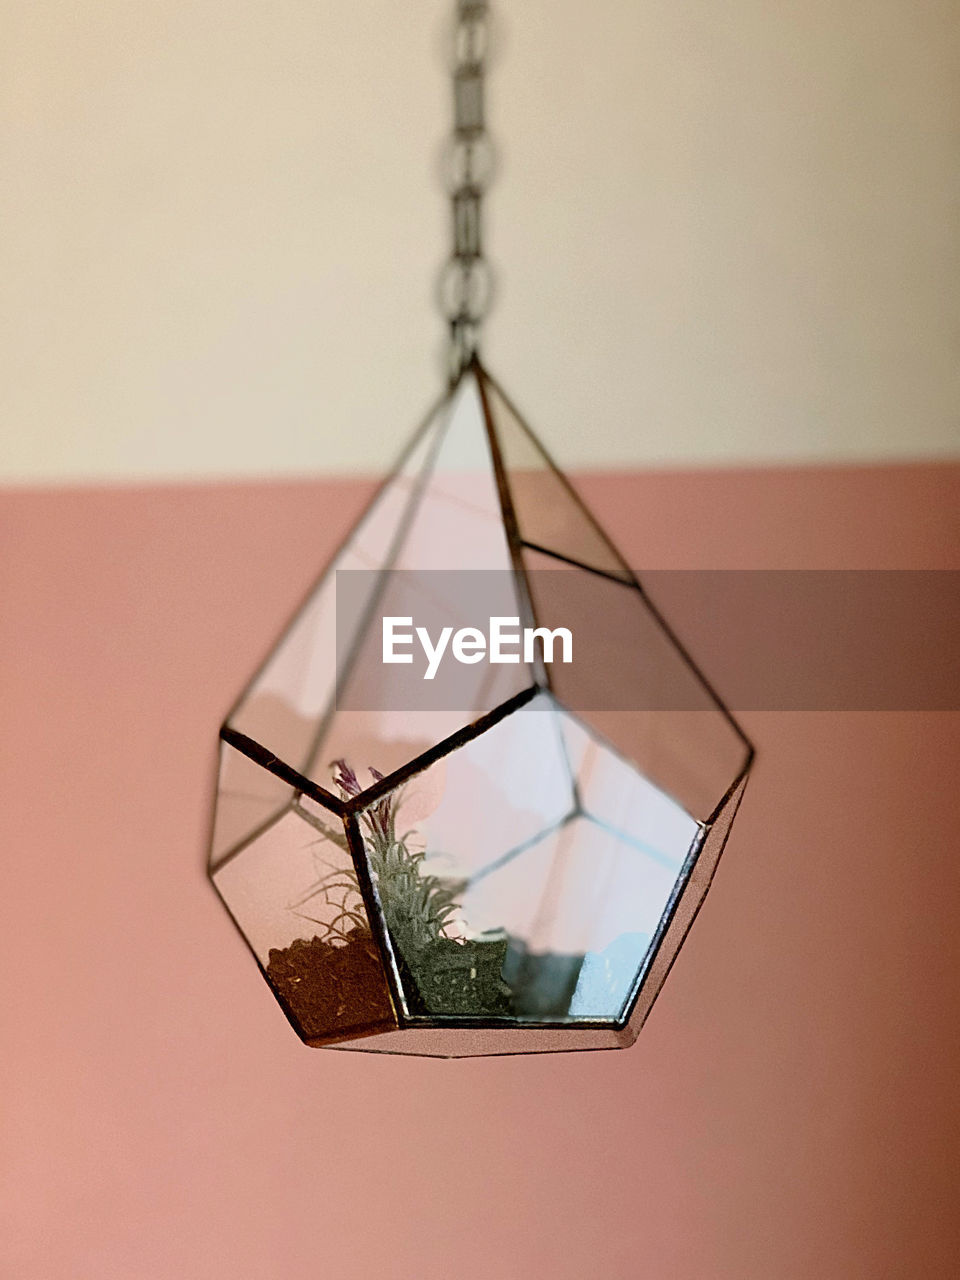 indoors, close-up, no people, glass - material, plant, transparent, wall - building feature, shape, still life, nature, tree, studio shot, hanging, focus on foreground, design, picture frame, window, art and craft, geometric shape